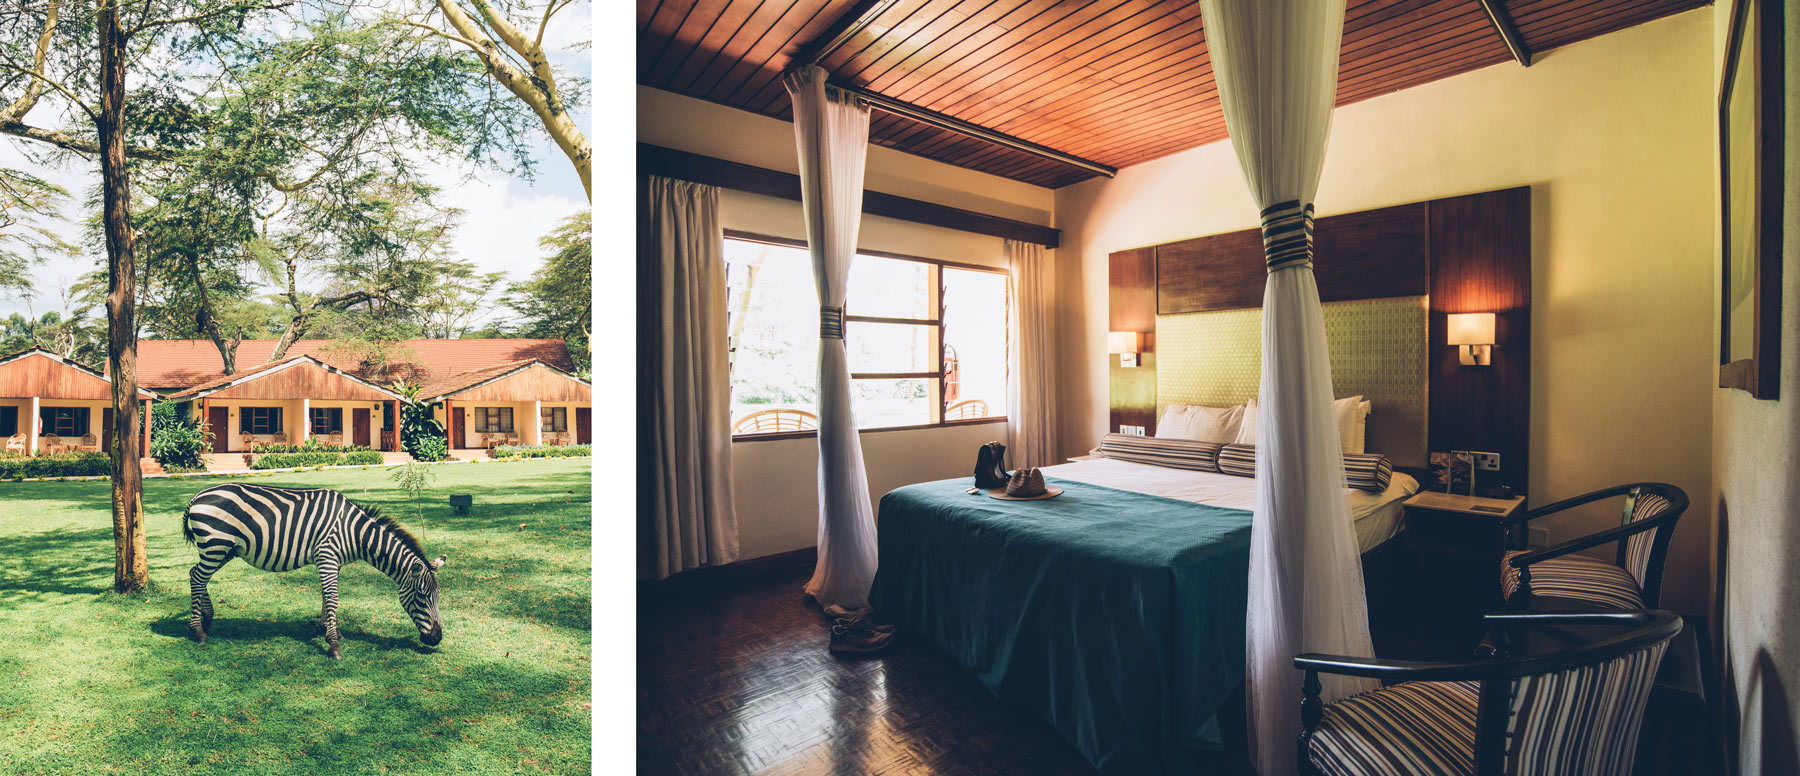 Country Club Lodge, Naivasha, Kenya